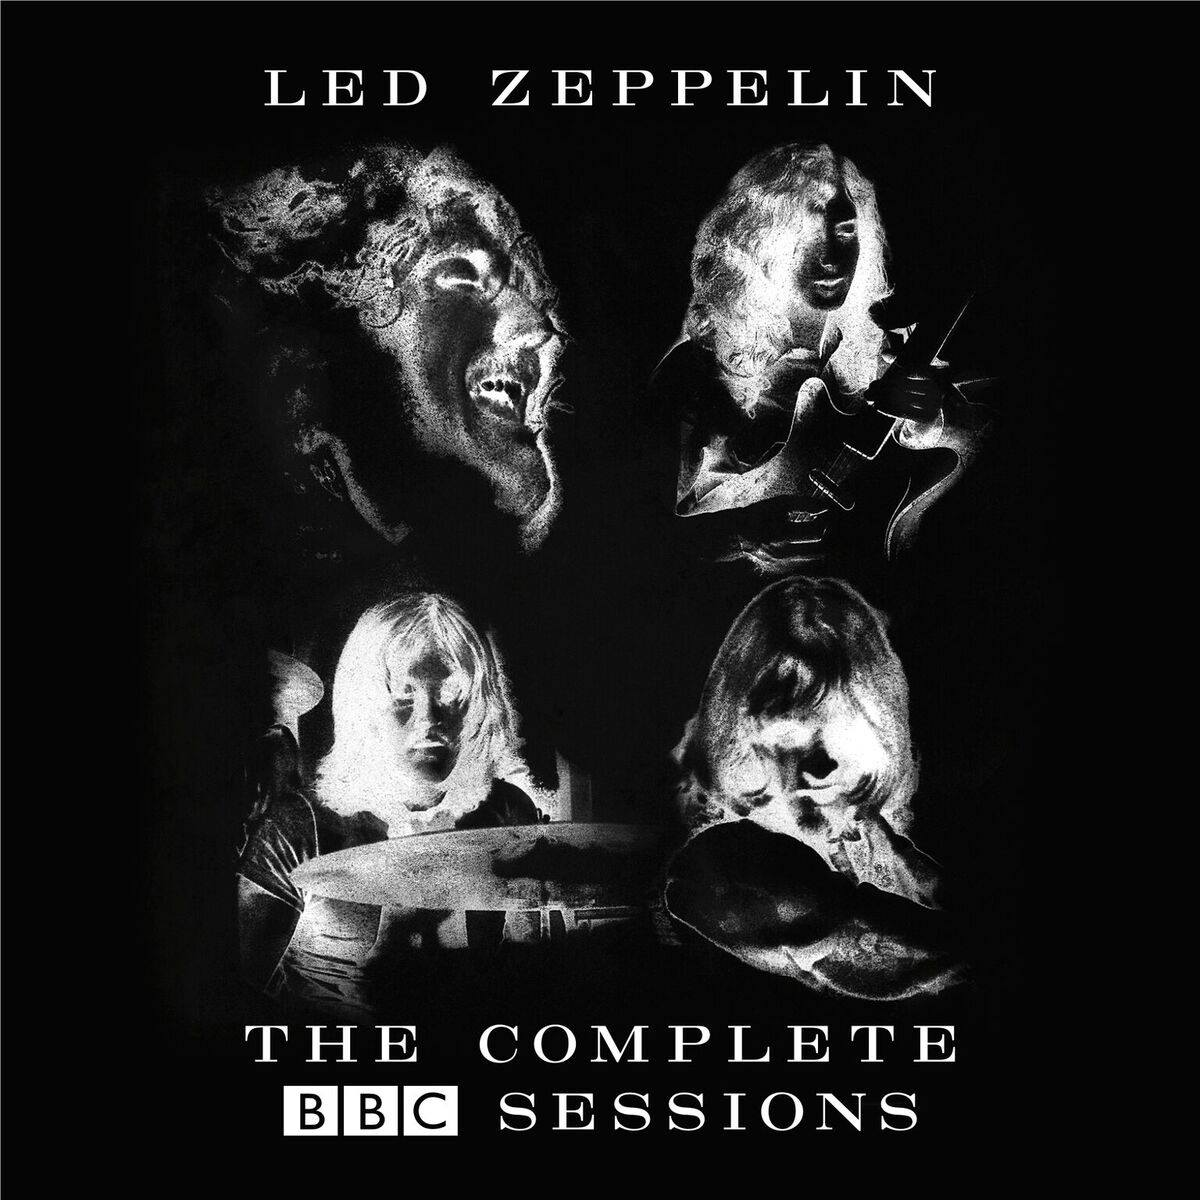 Led Zeppelin / The Complete BBC Sessions / super deluxe edition box set